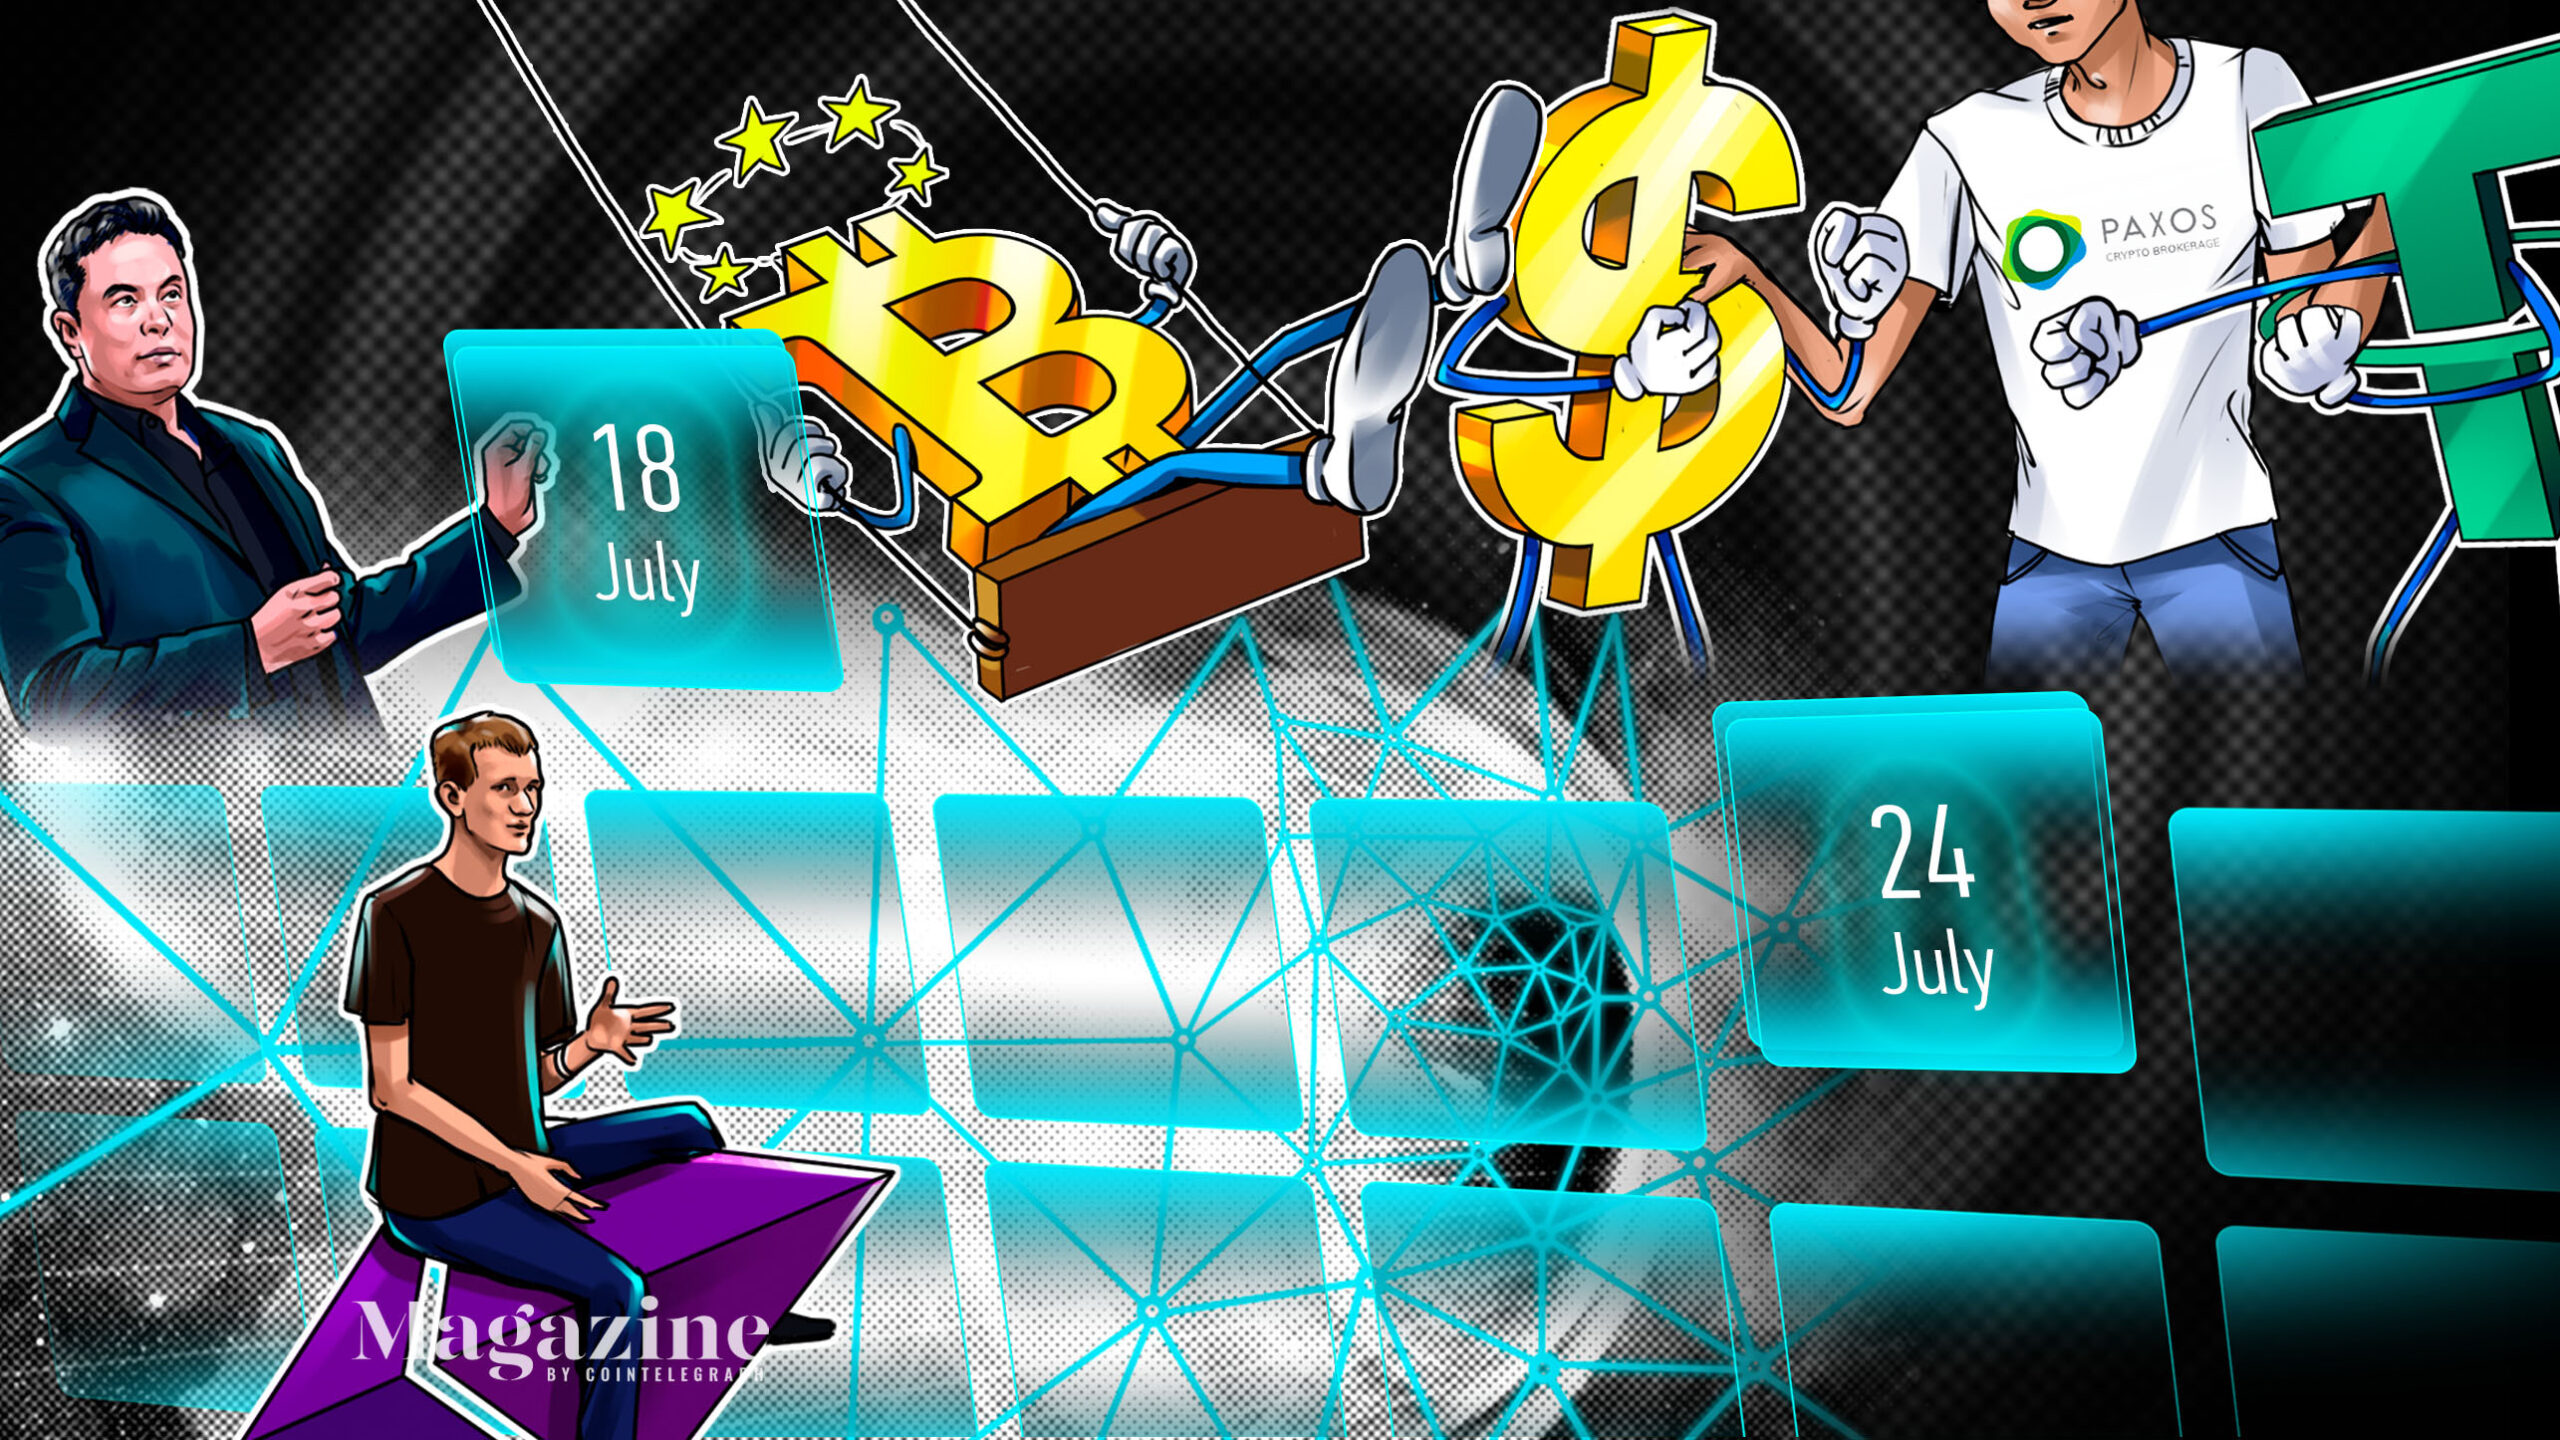 SpaceX owns BTC, daily Dogecoin volume soared to nearly $1B in Q2, Grayscale eyeing DeFi and ETF: Hodler's Digest, July 18–24